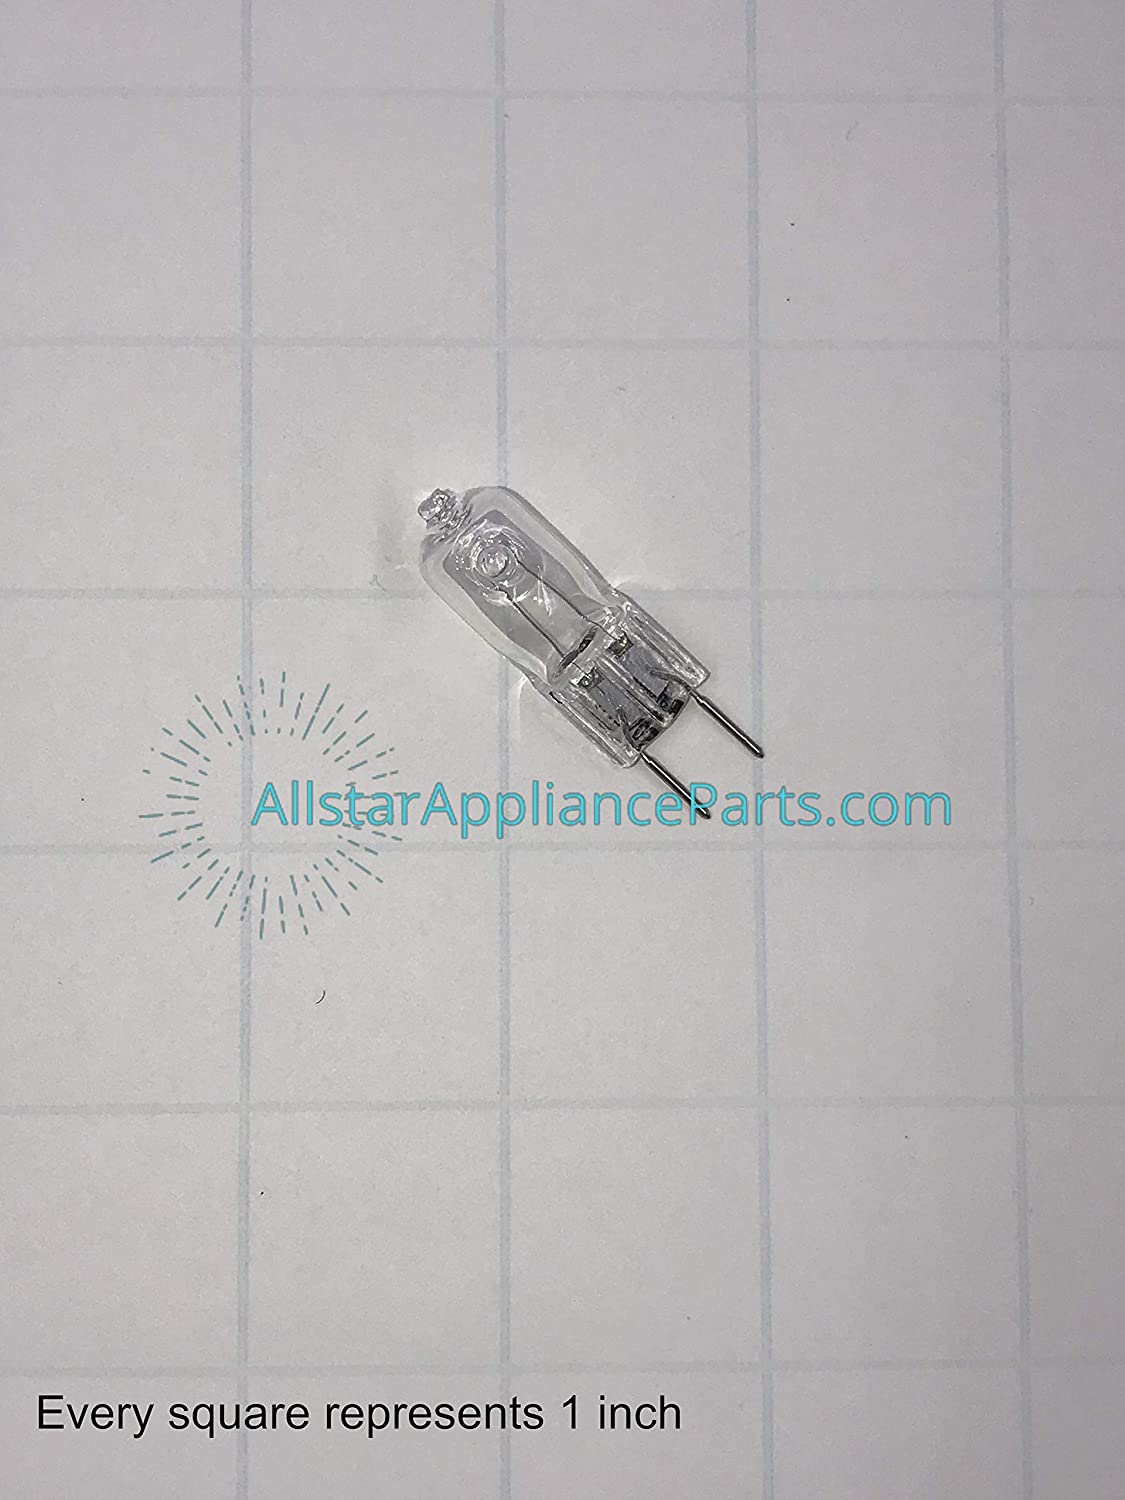 Replacement Bulb 20W for GE Microwave AP4380308 WB08X10050 WB36X10213